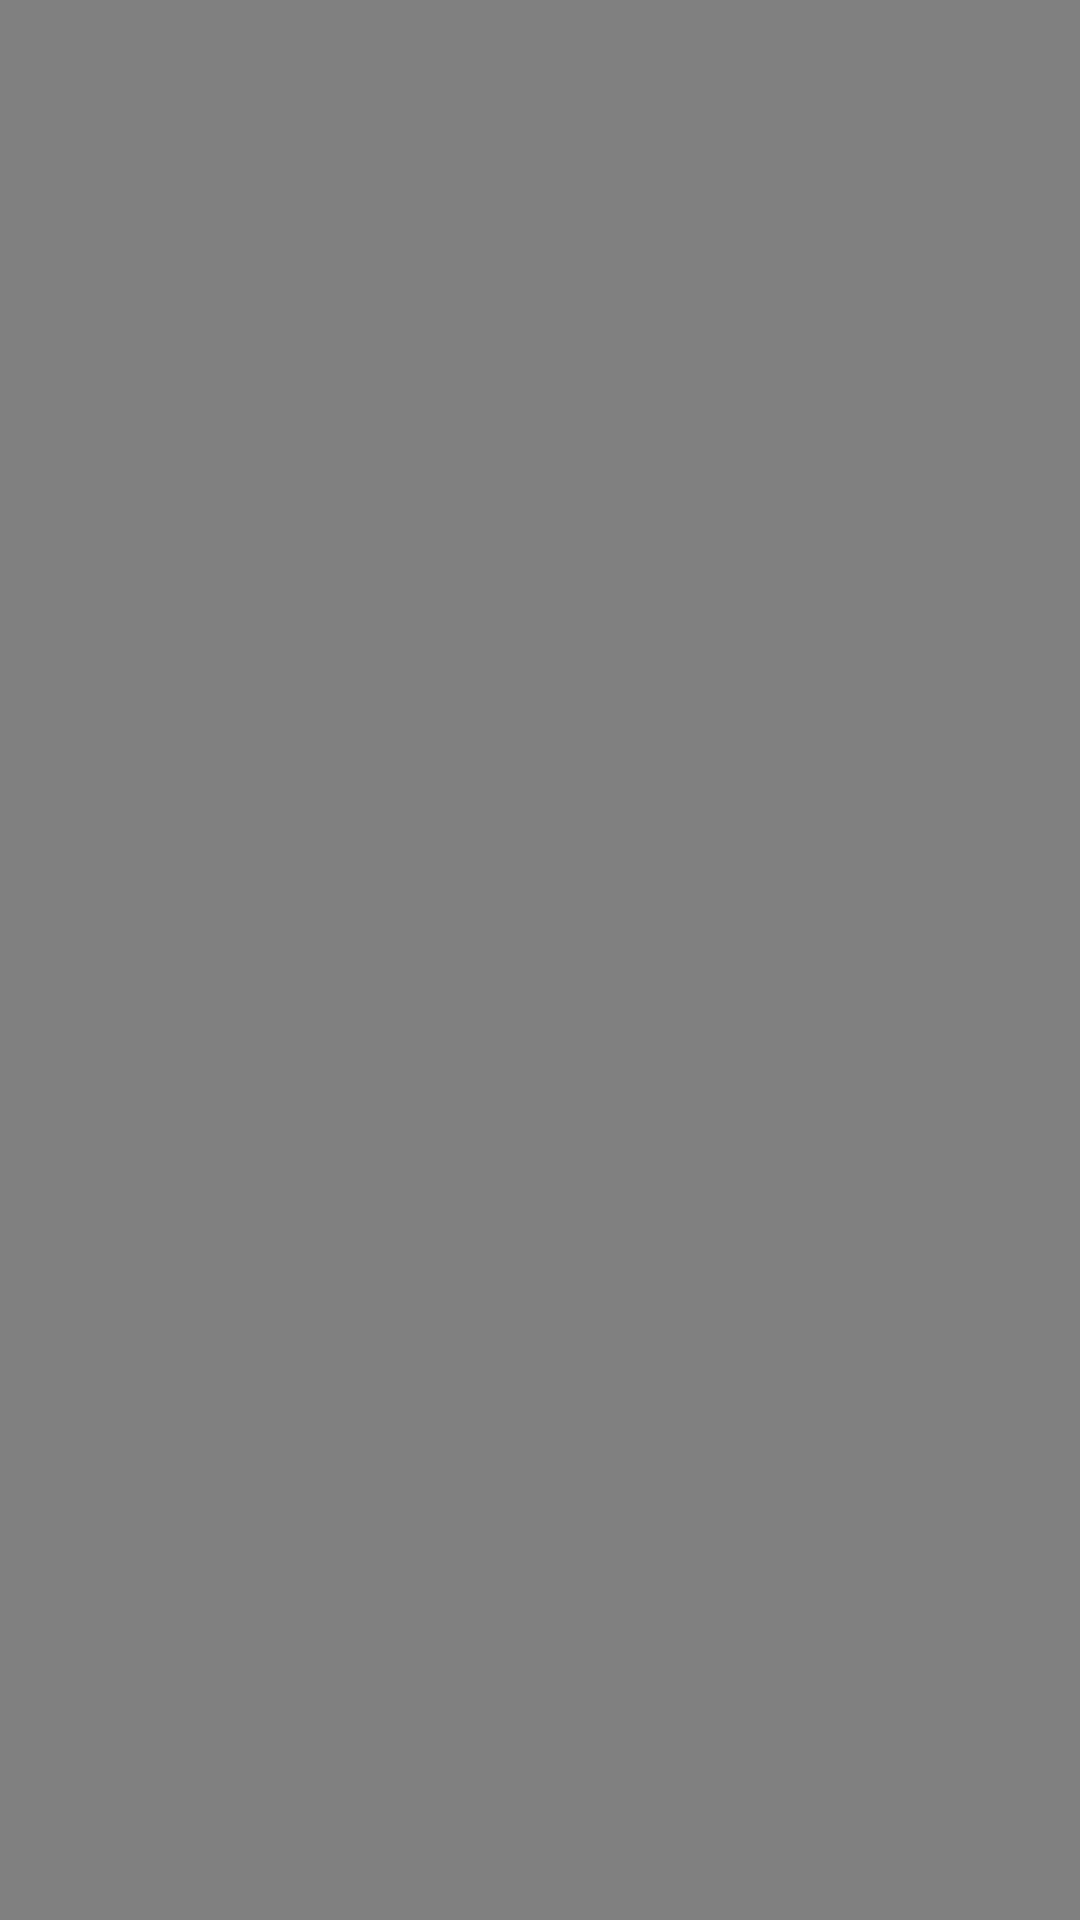 1080x1920 Gray Web Gray Solid Color Background